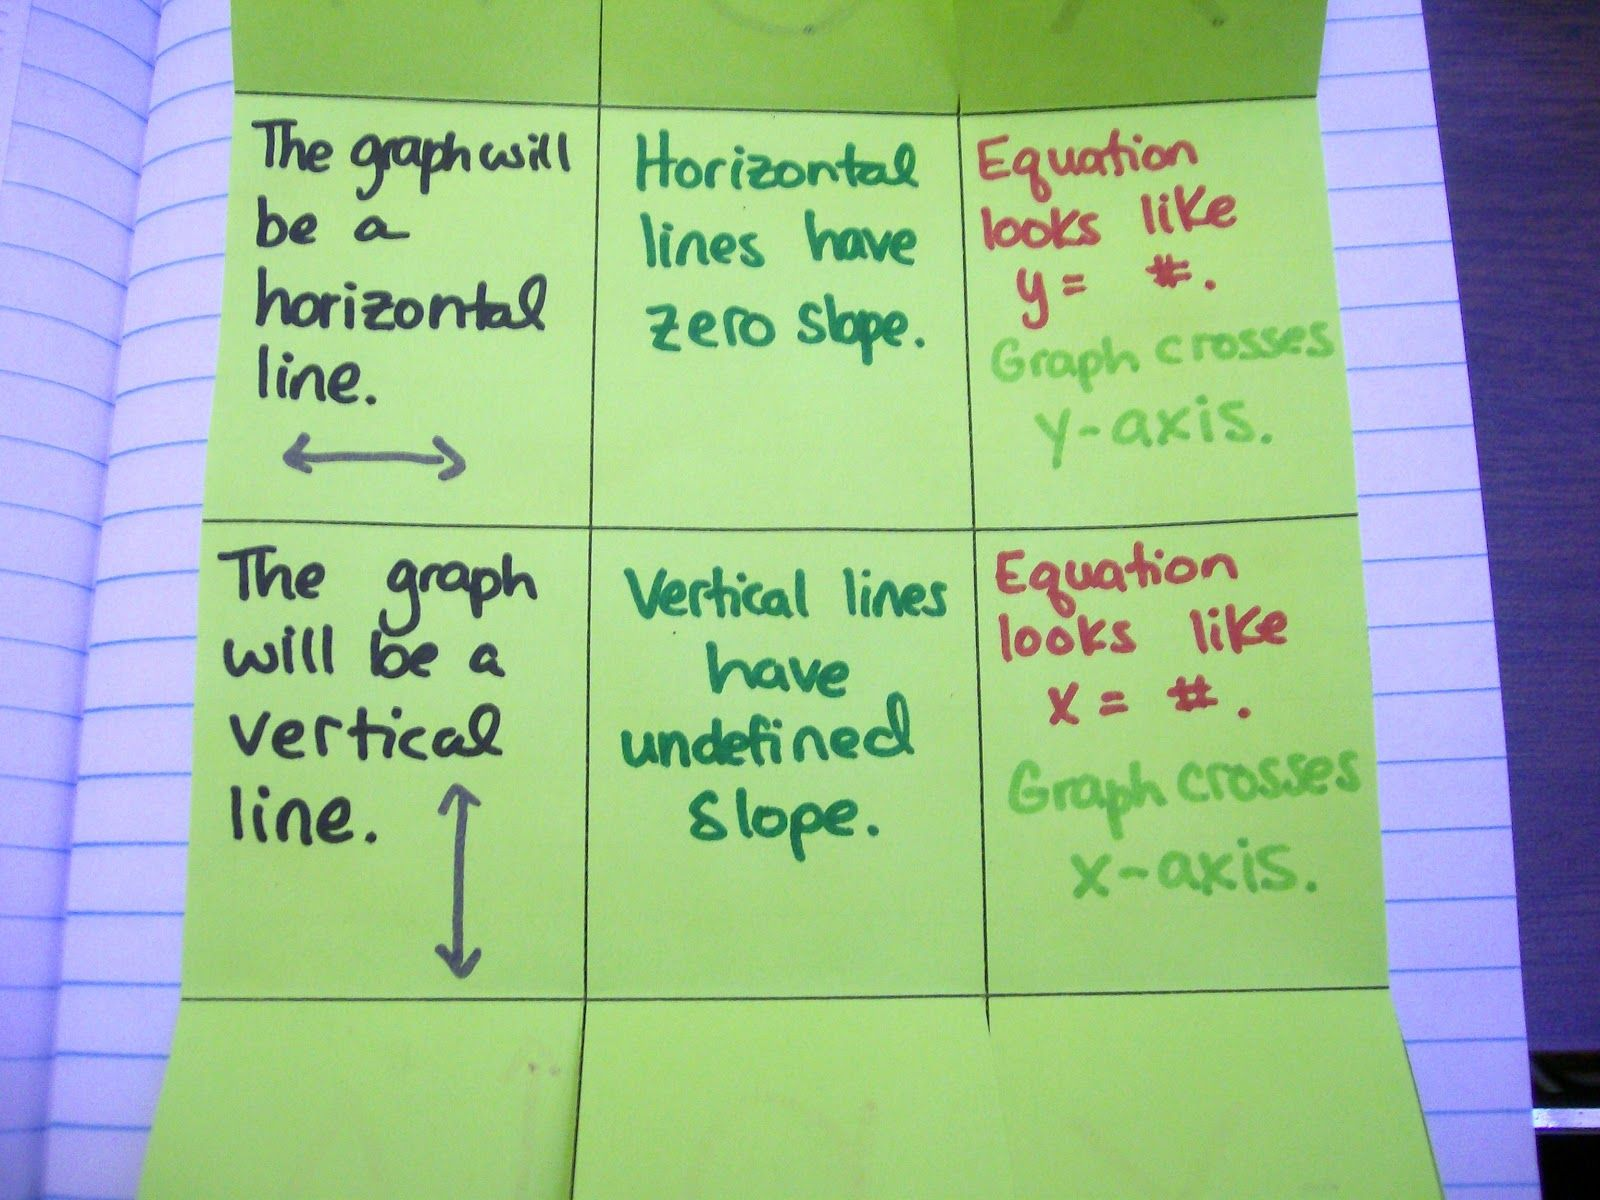 HOY VUX Mnemonic for graphing horizontal and vertical lines